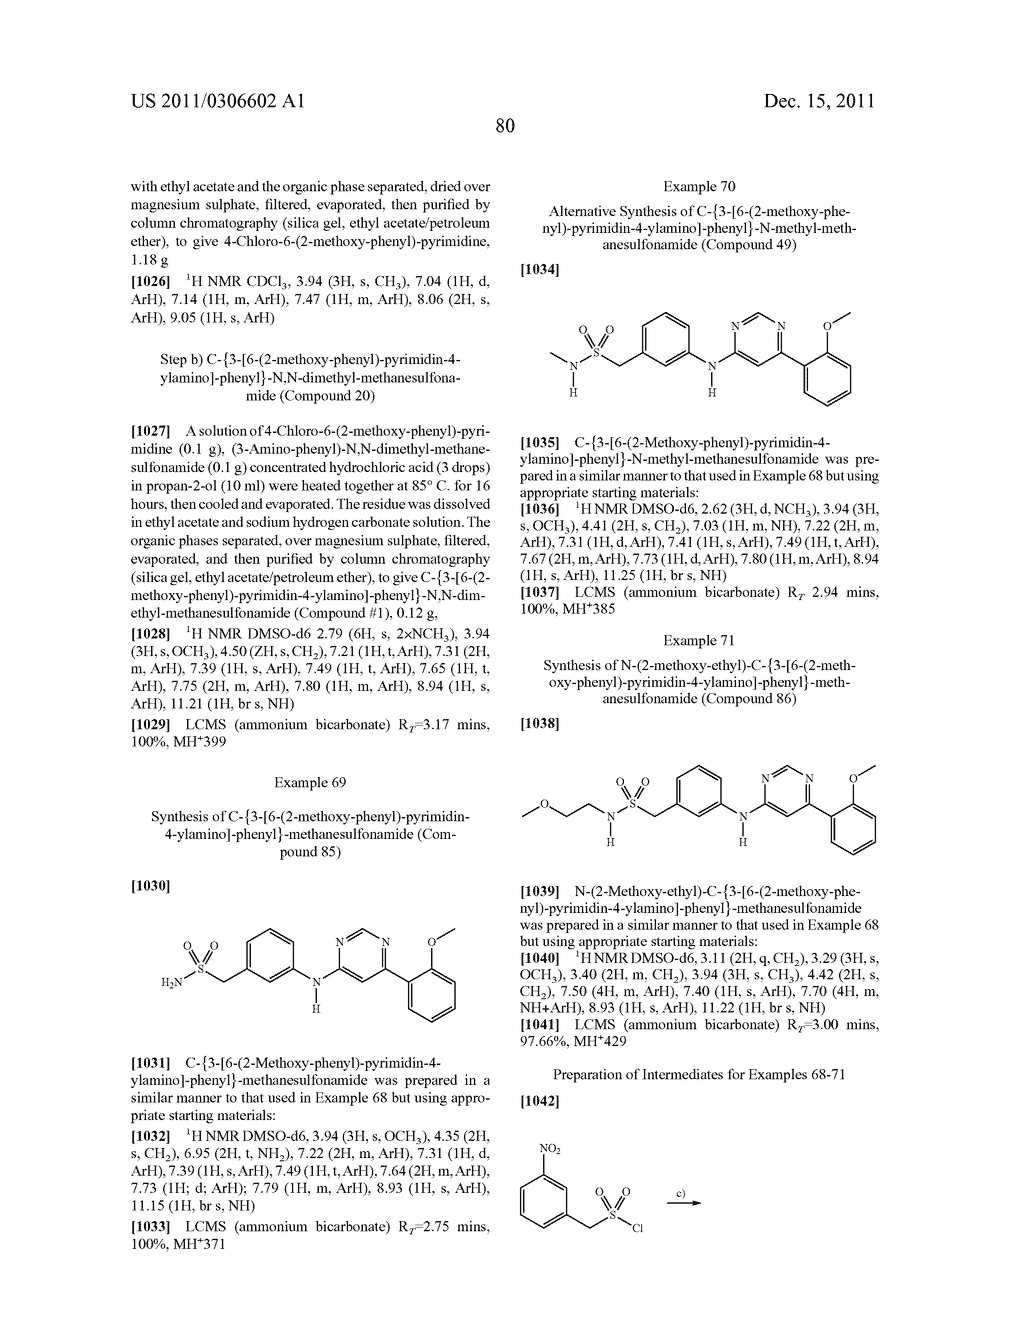 4, 6-DISUBSTITUTED AMINOPYRIMIDINE DERIVATIVES AS INHIBITORS OF PROTEIN     KINASES - diagram, schematic, and image 86